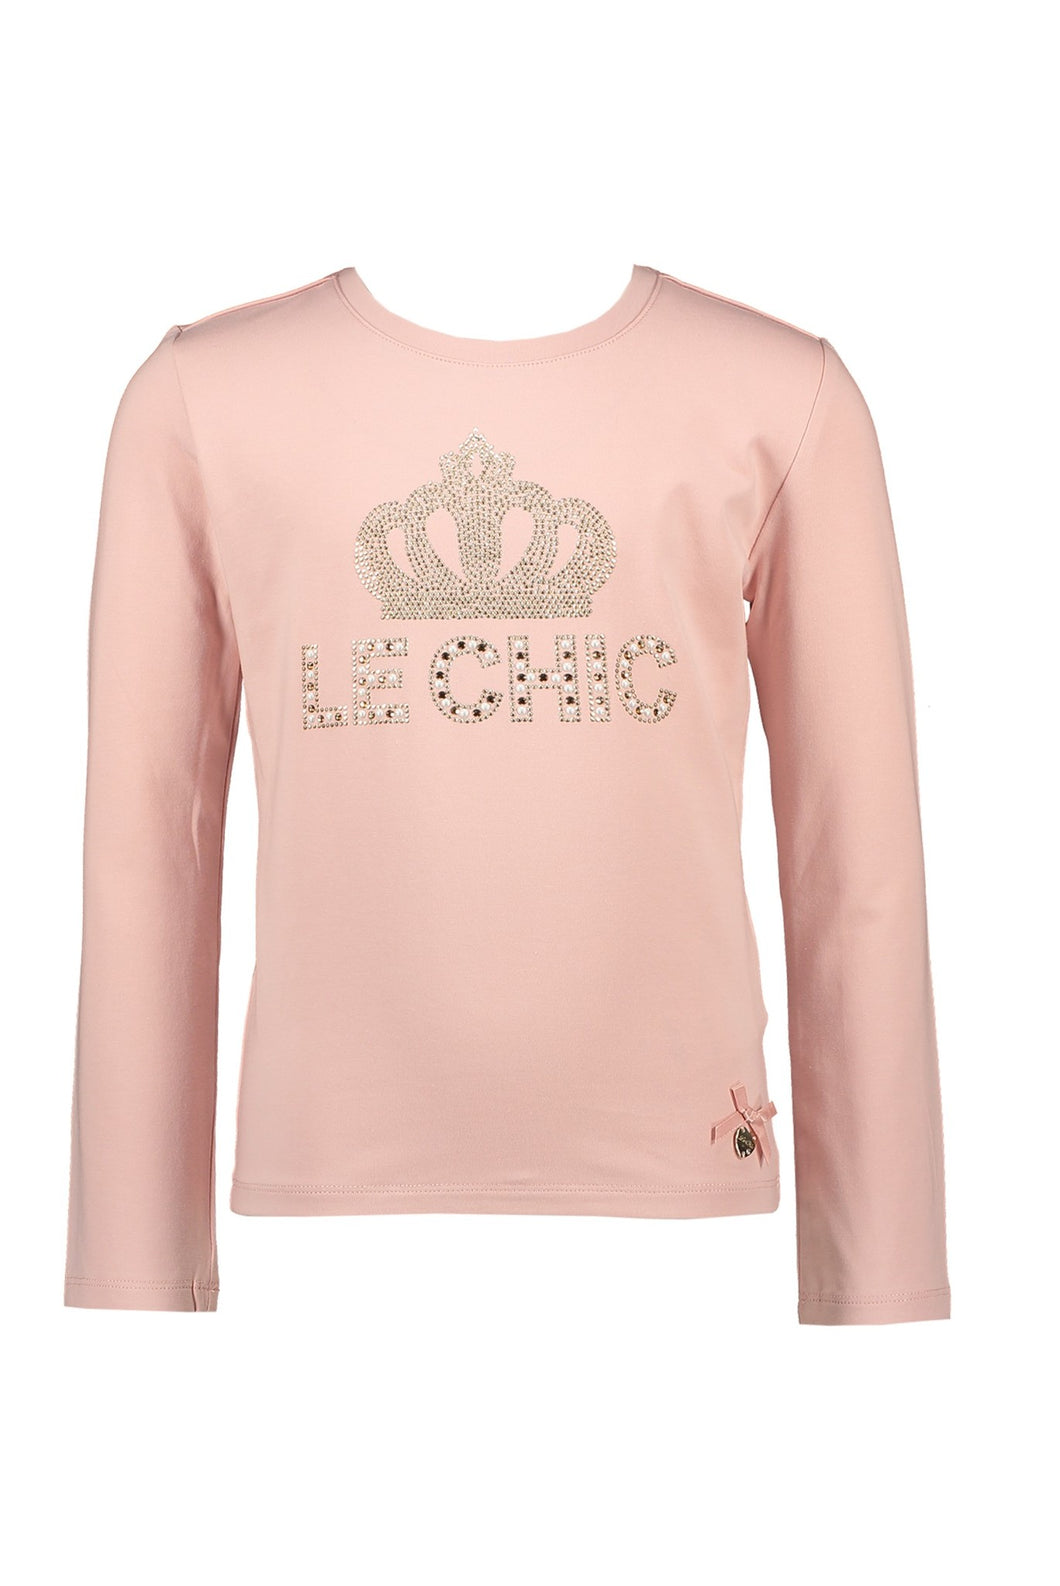 Le Chic Girls Long Sleeve Crown Logo T Shirt - Rose